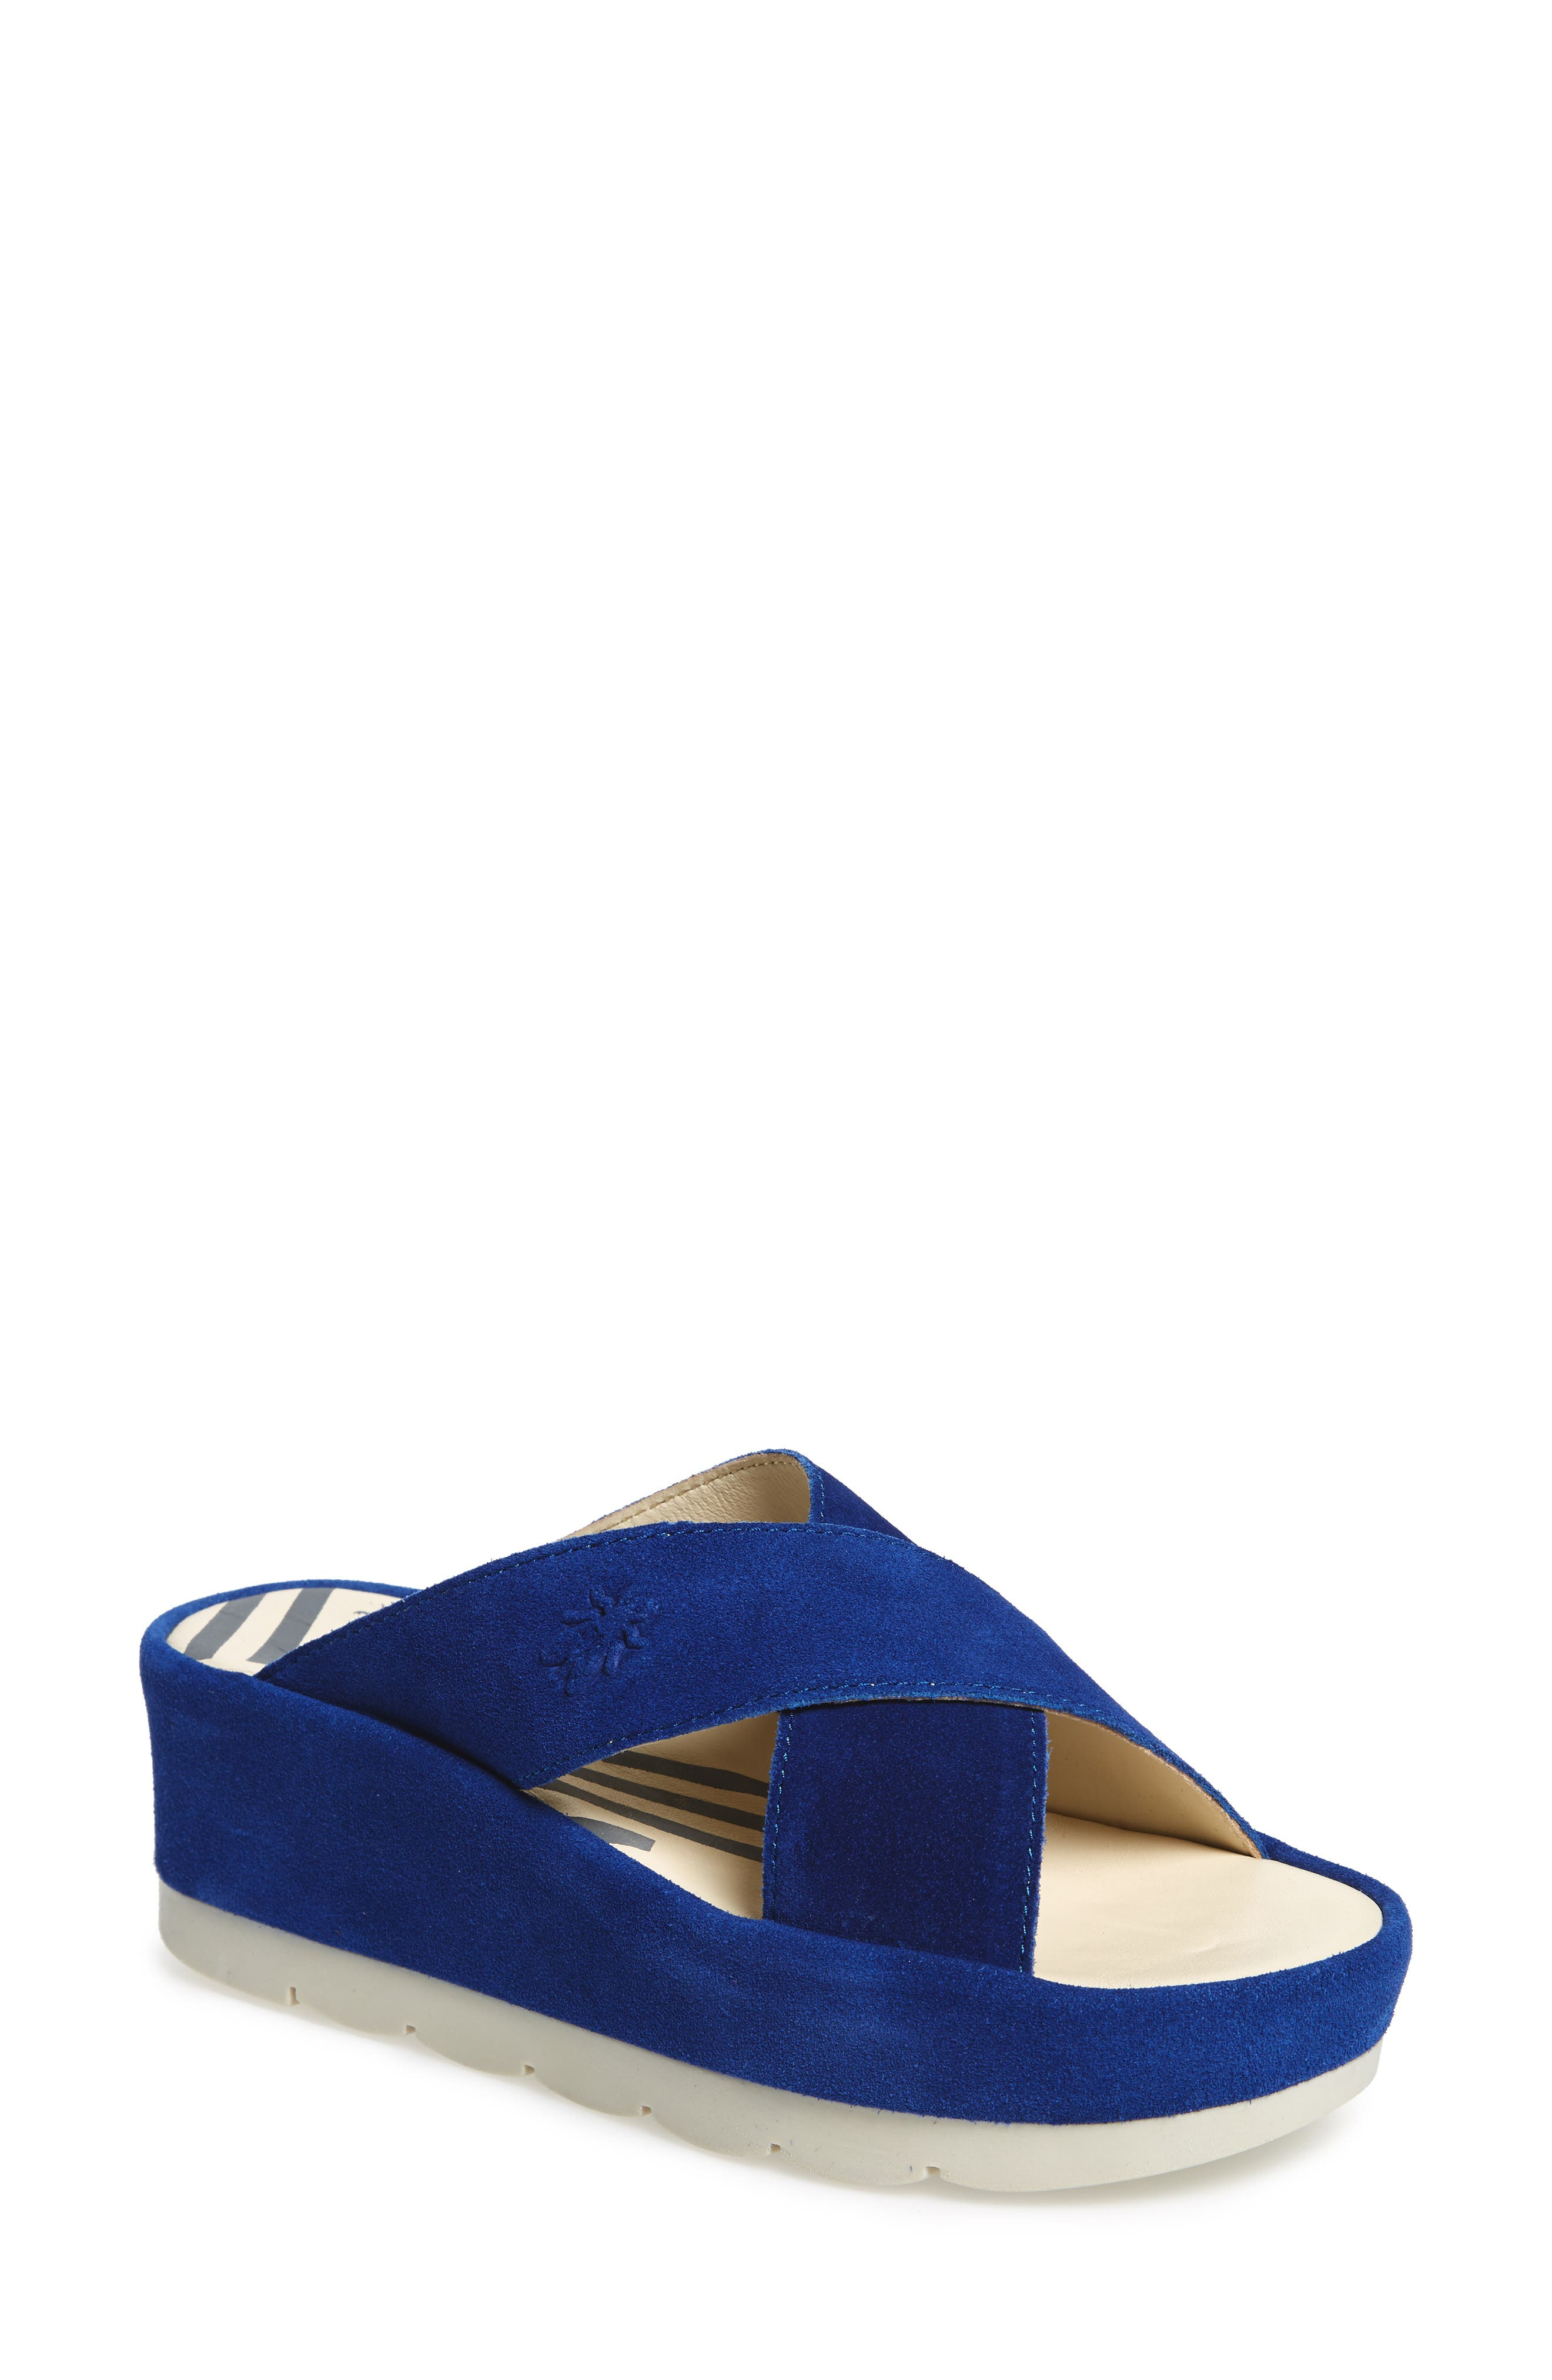 Fly London Begs Platform Slide Sandal, Blue